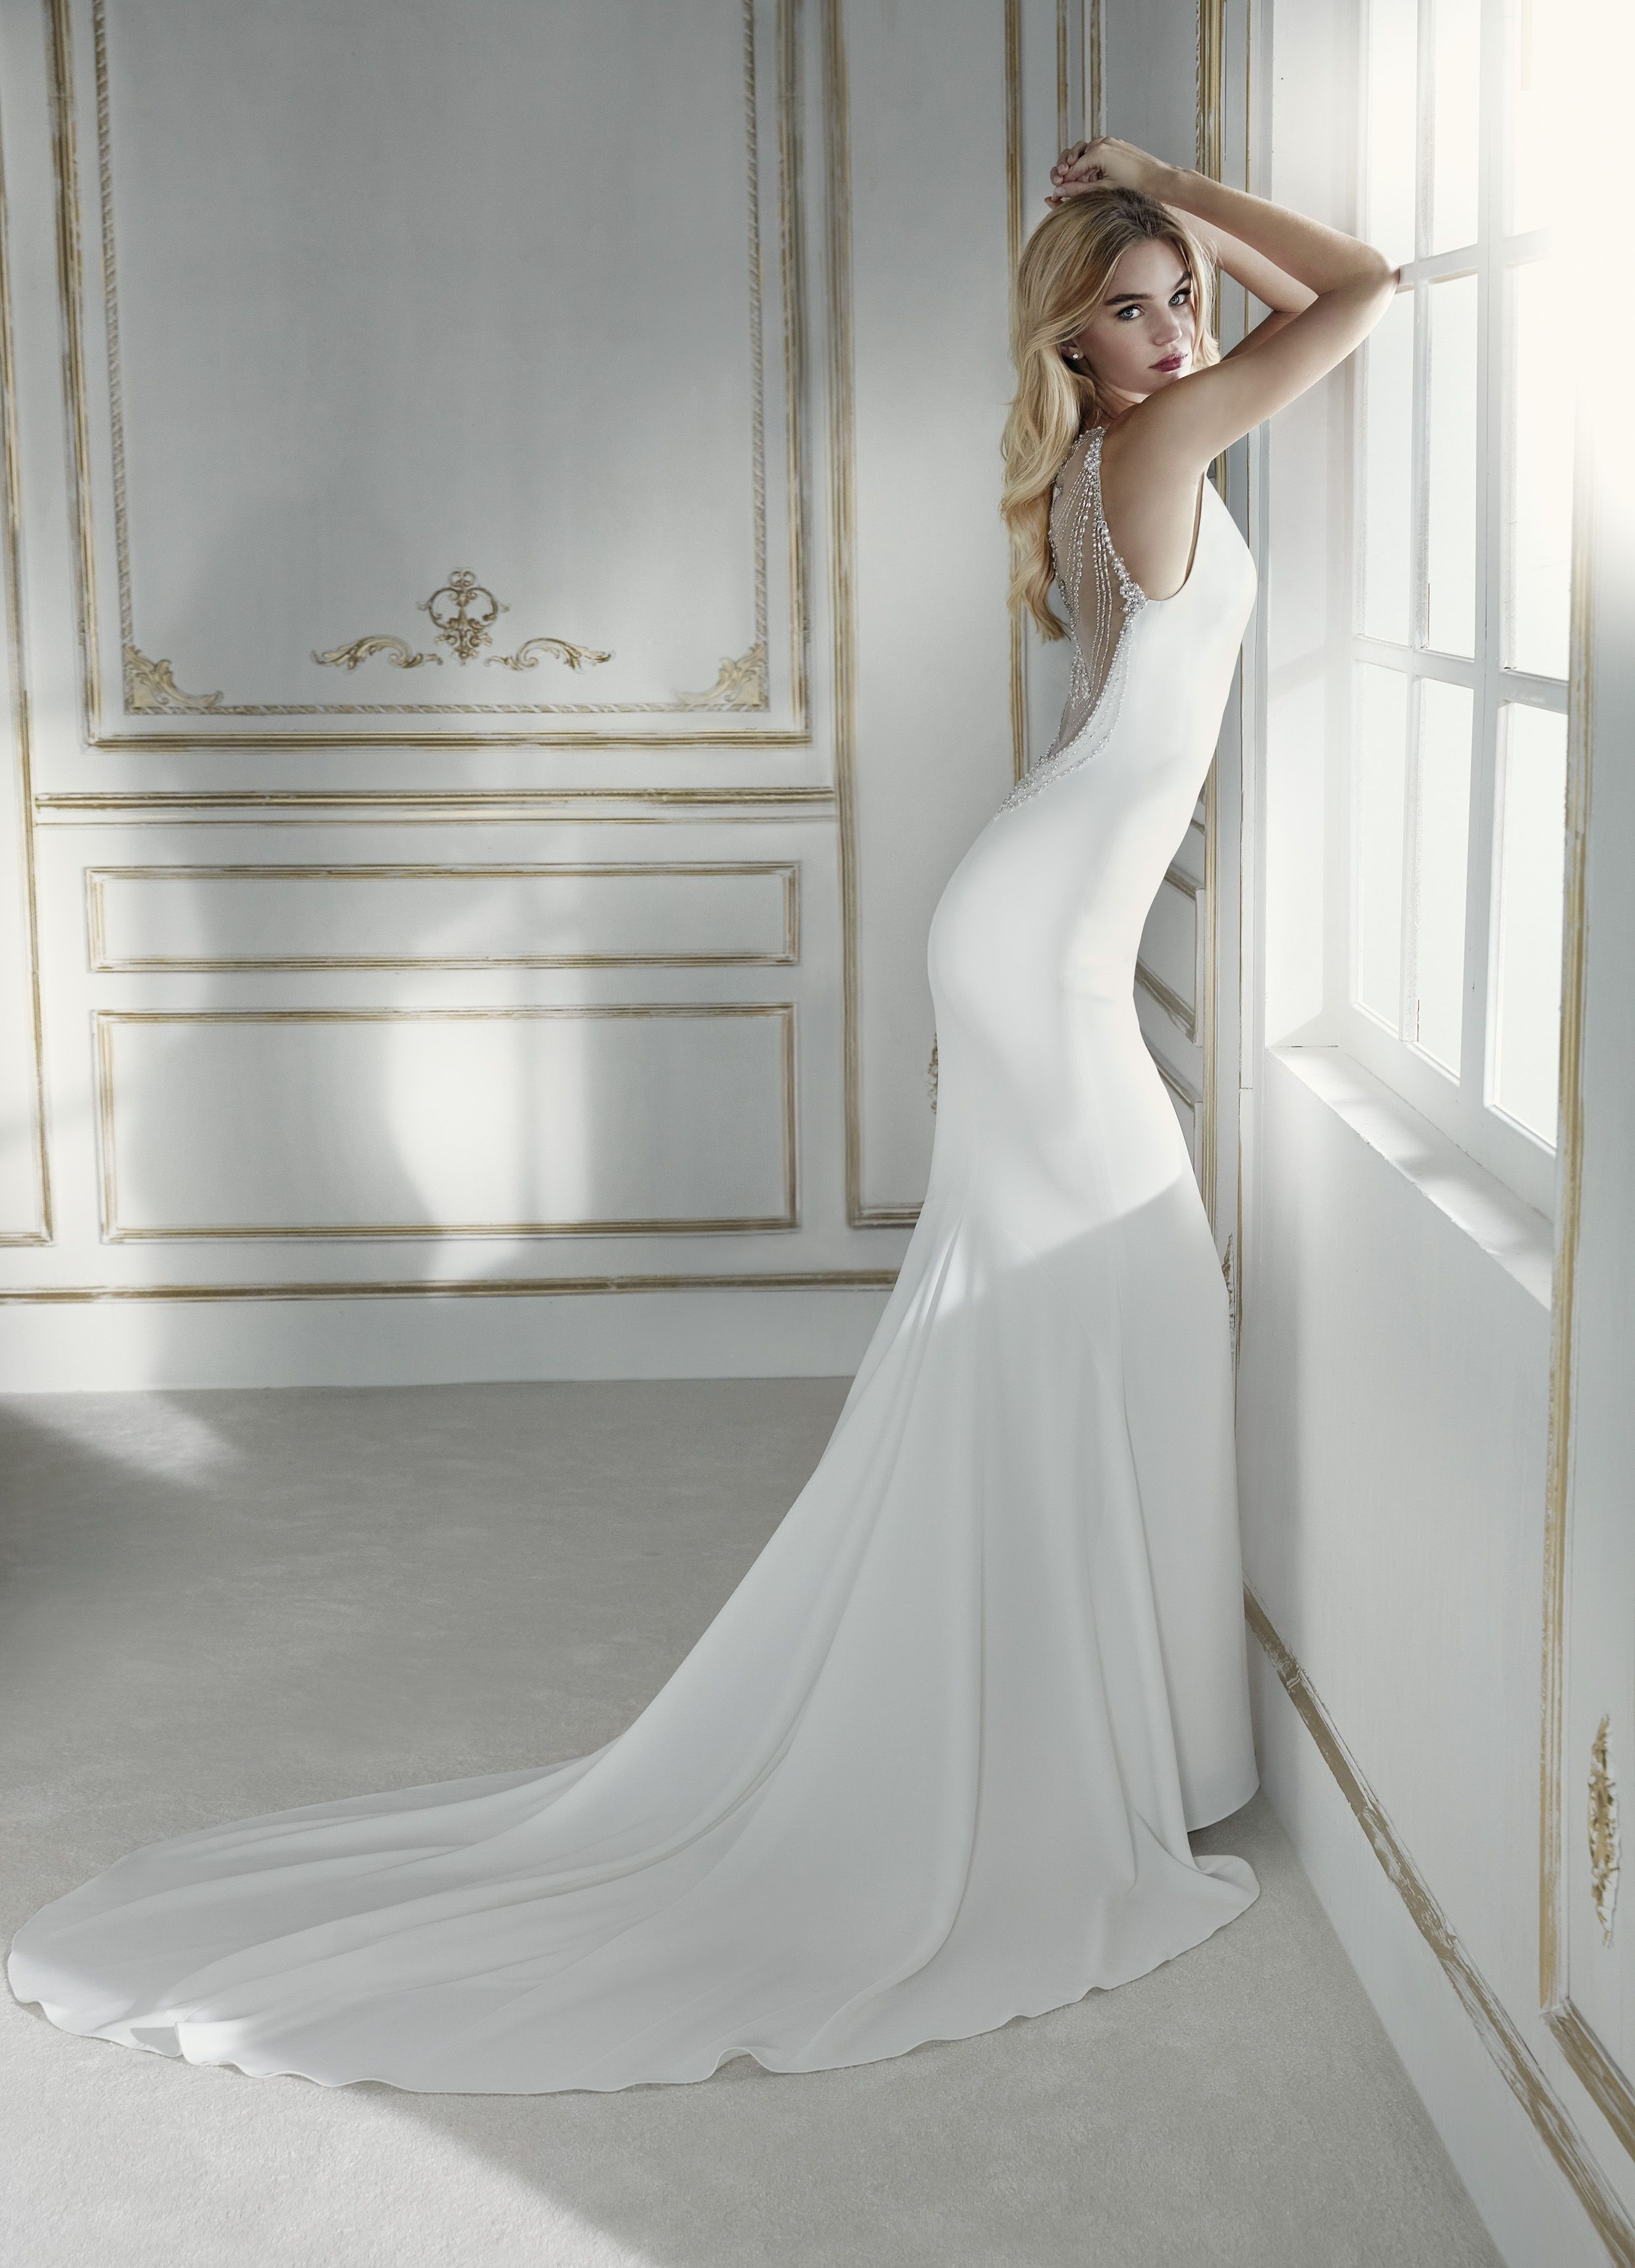 Meet Our Newest Designer Gown Palermo From The Collection By Lasposa Thistles Ie Galway Wedding Dresses Wedding Dress Prices La Sposa Wedding Dresses